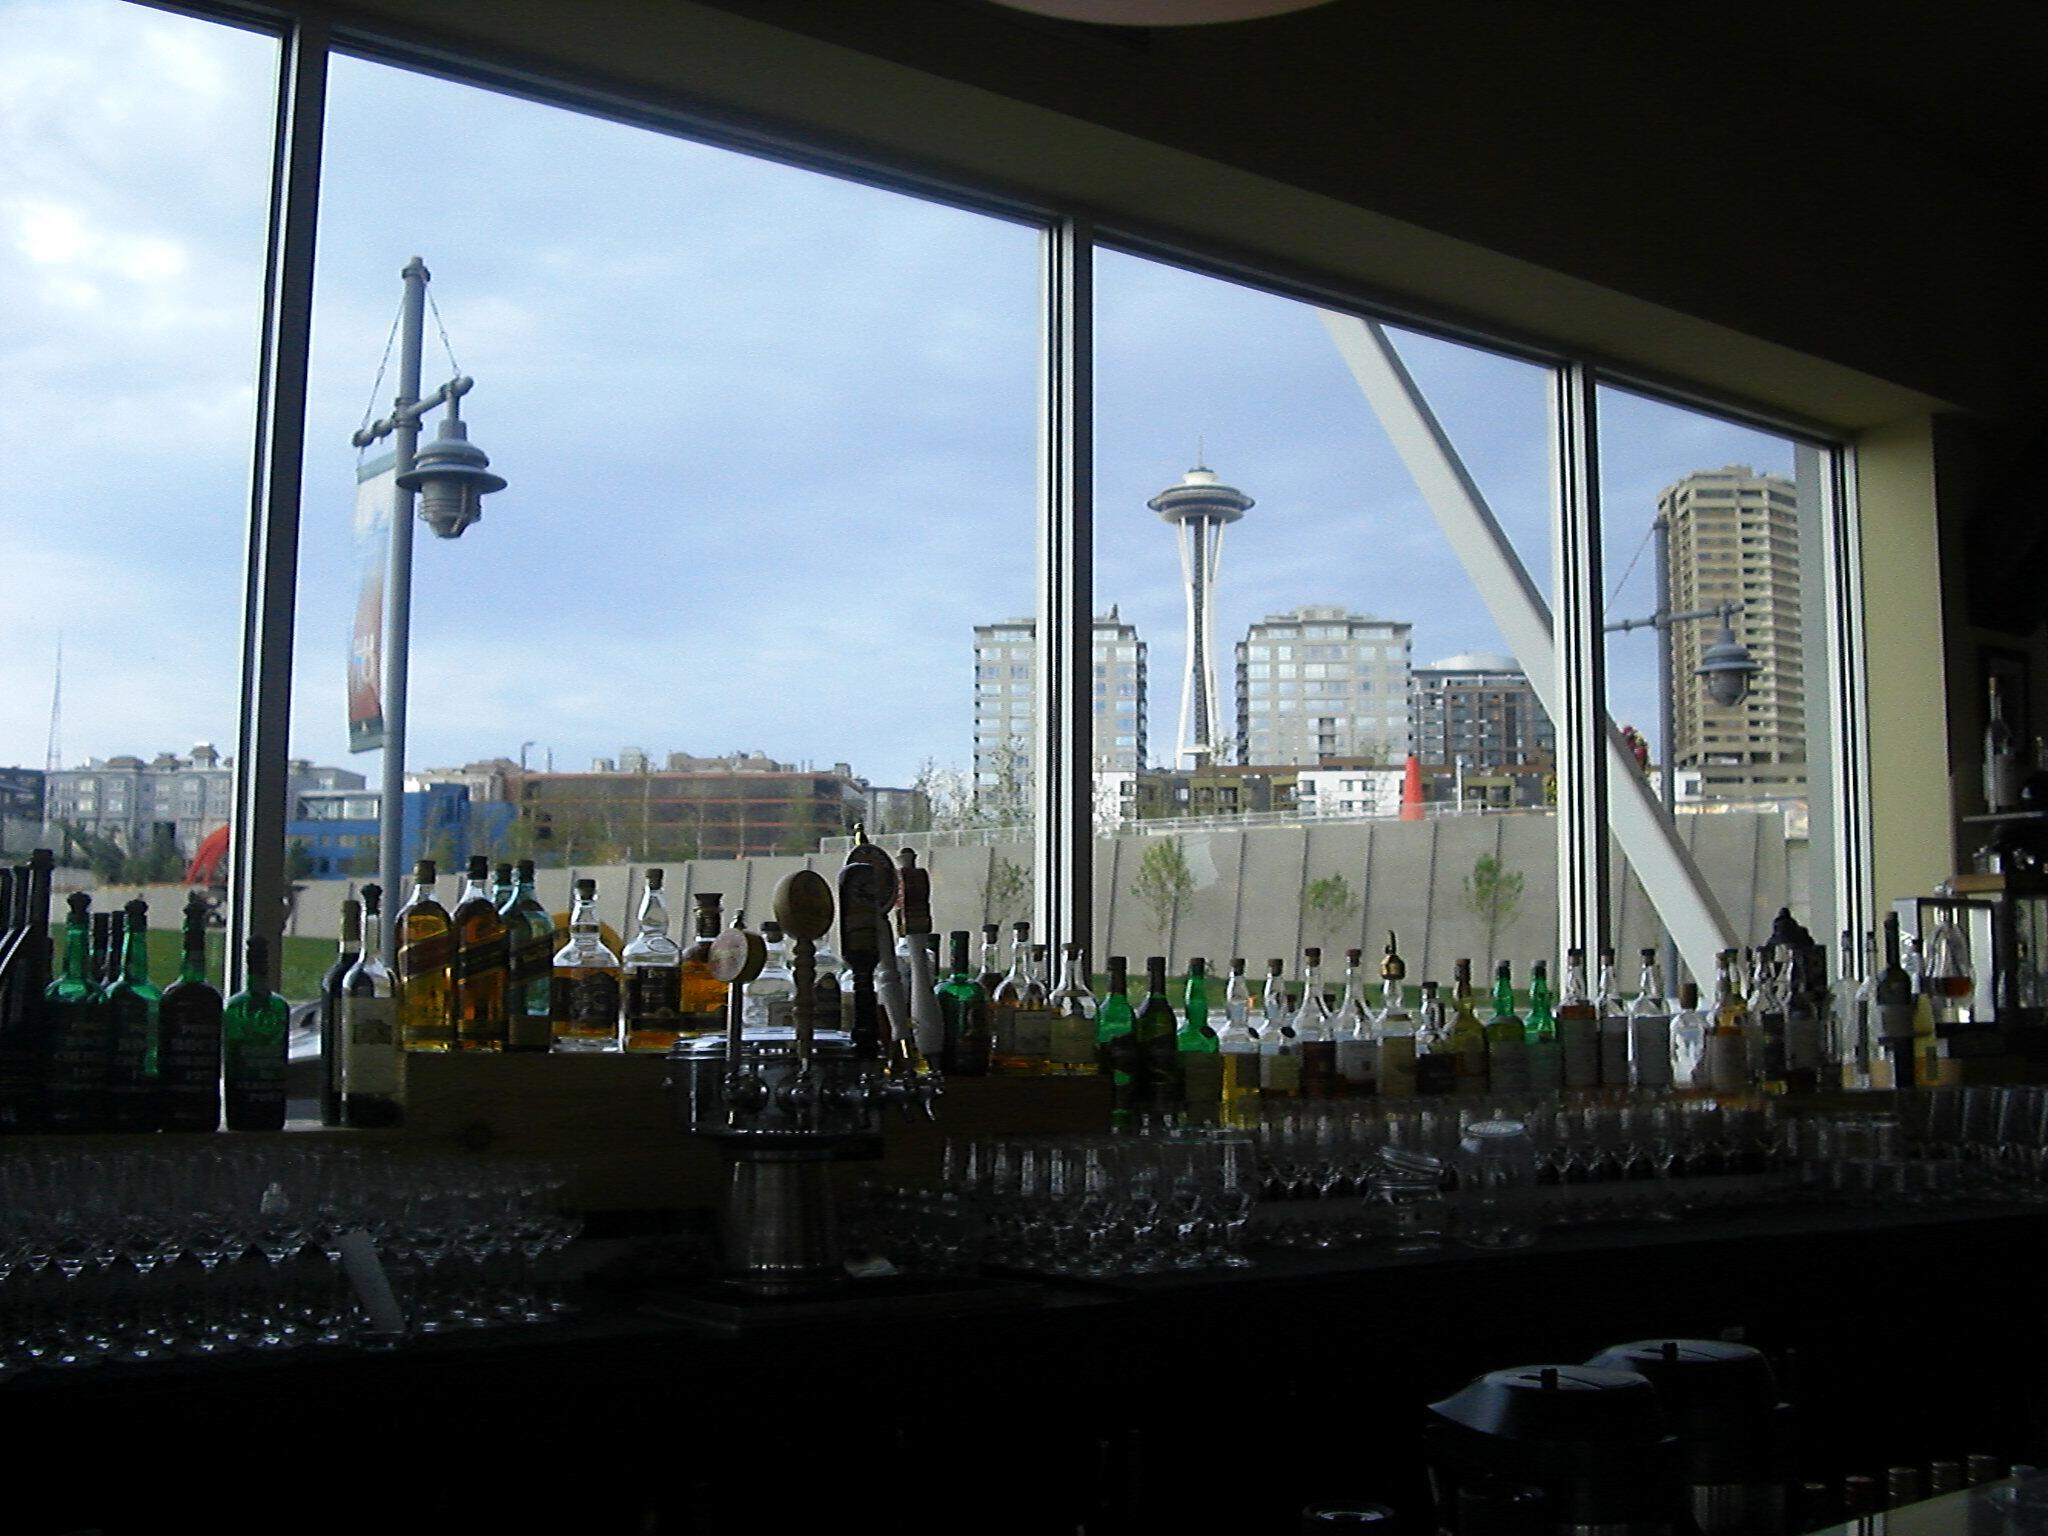 Seattle Space Needle viewed from WaterFront Seafood Grill bar